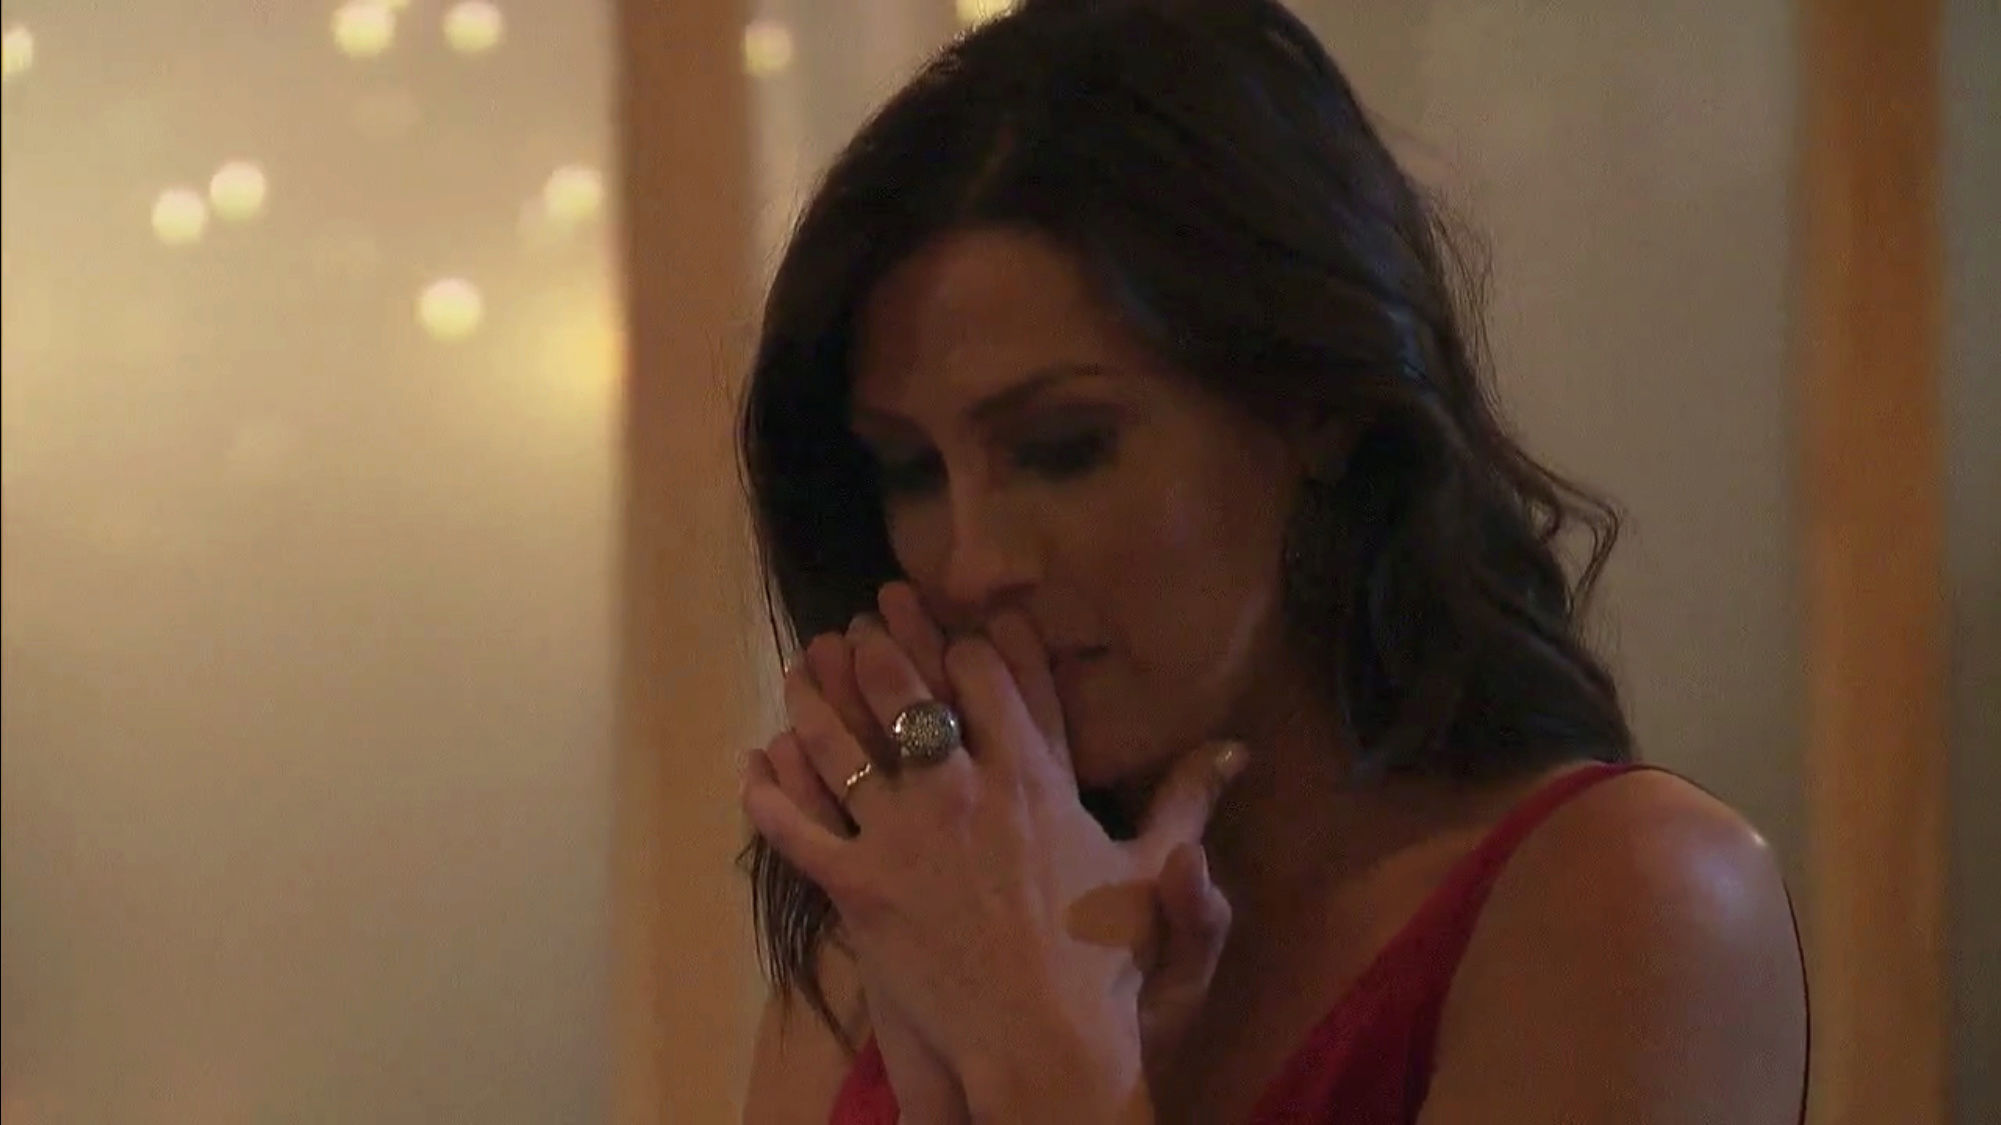 Bachelorette 14 - Becca Kufrin - ScreenCaps - NO Discussion - *Sleuthing Spoilers* 2fd39110